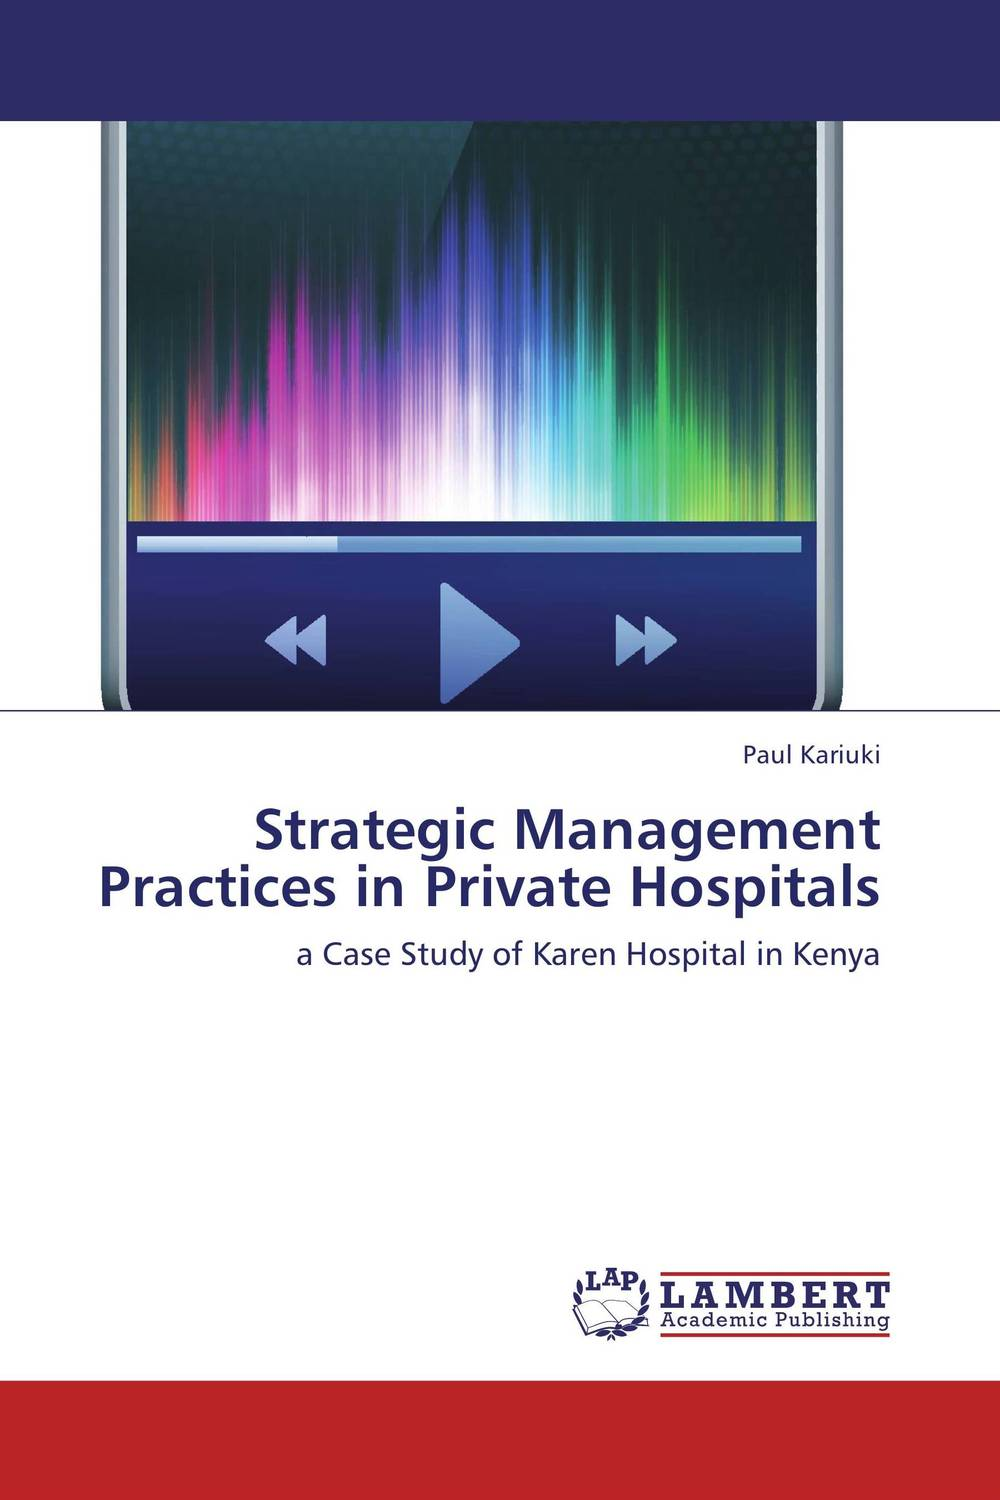 Strategic Management Practices in Private Hospitals evaluation of the internal control practices